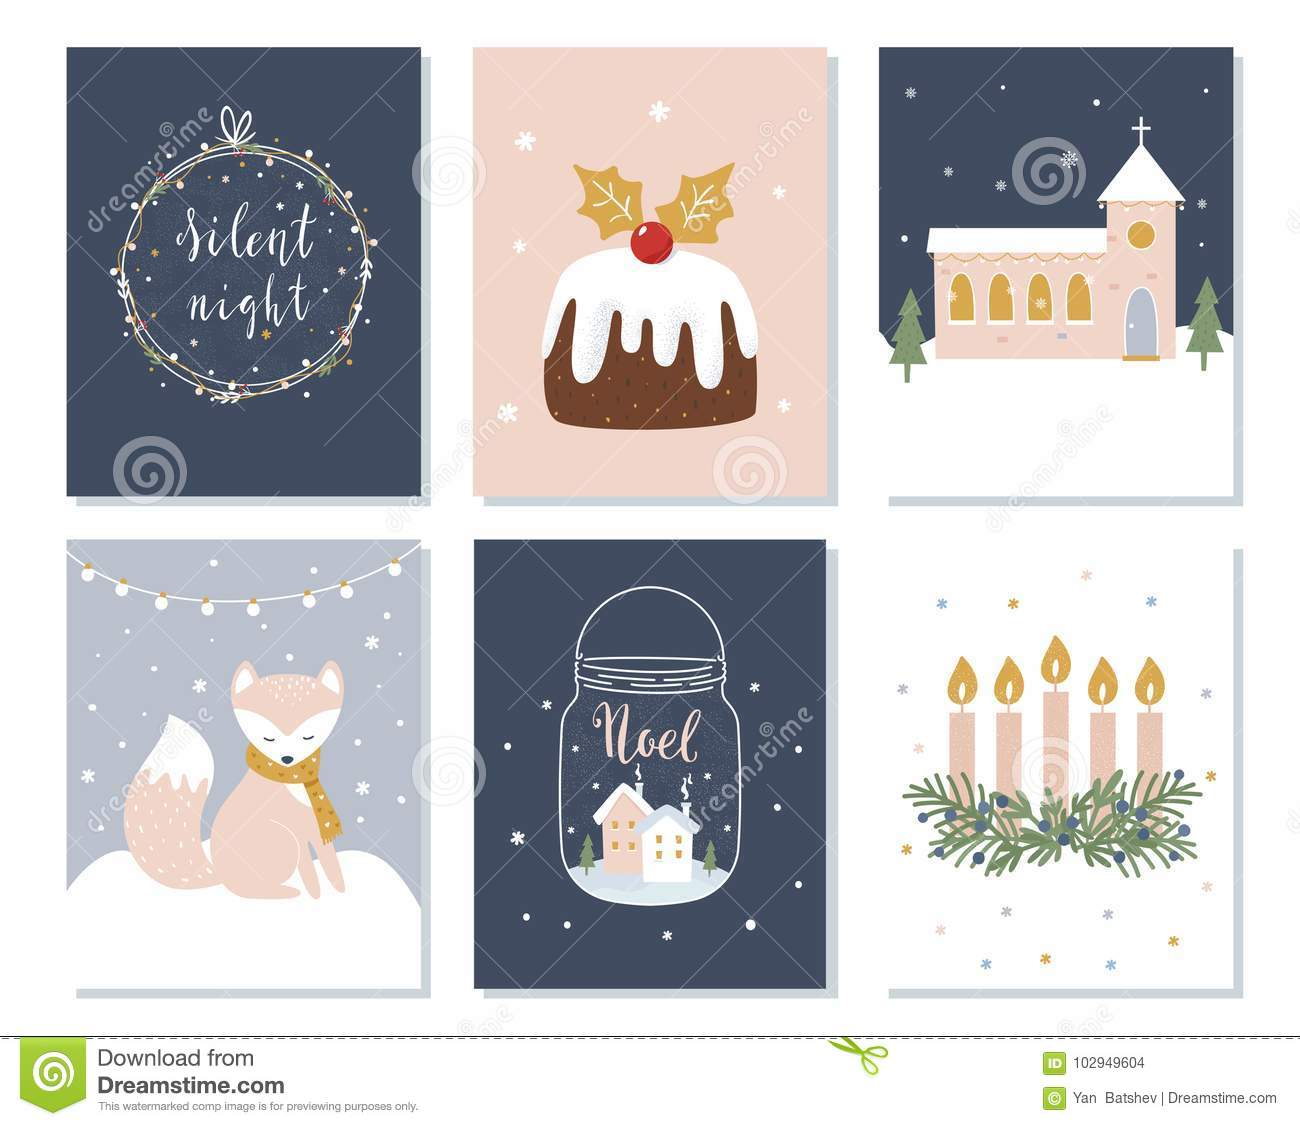 hight resolution of advent wreath stock illustrations 1 224 advent wreath stock illustrations vectors clipart dreamstime